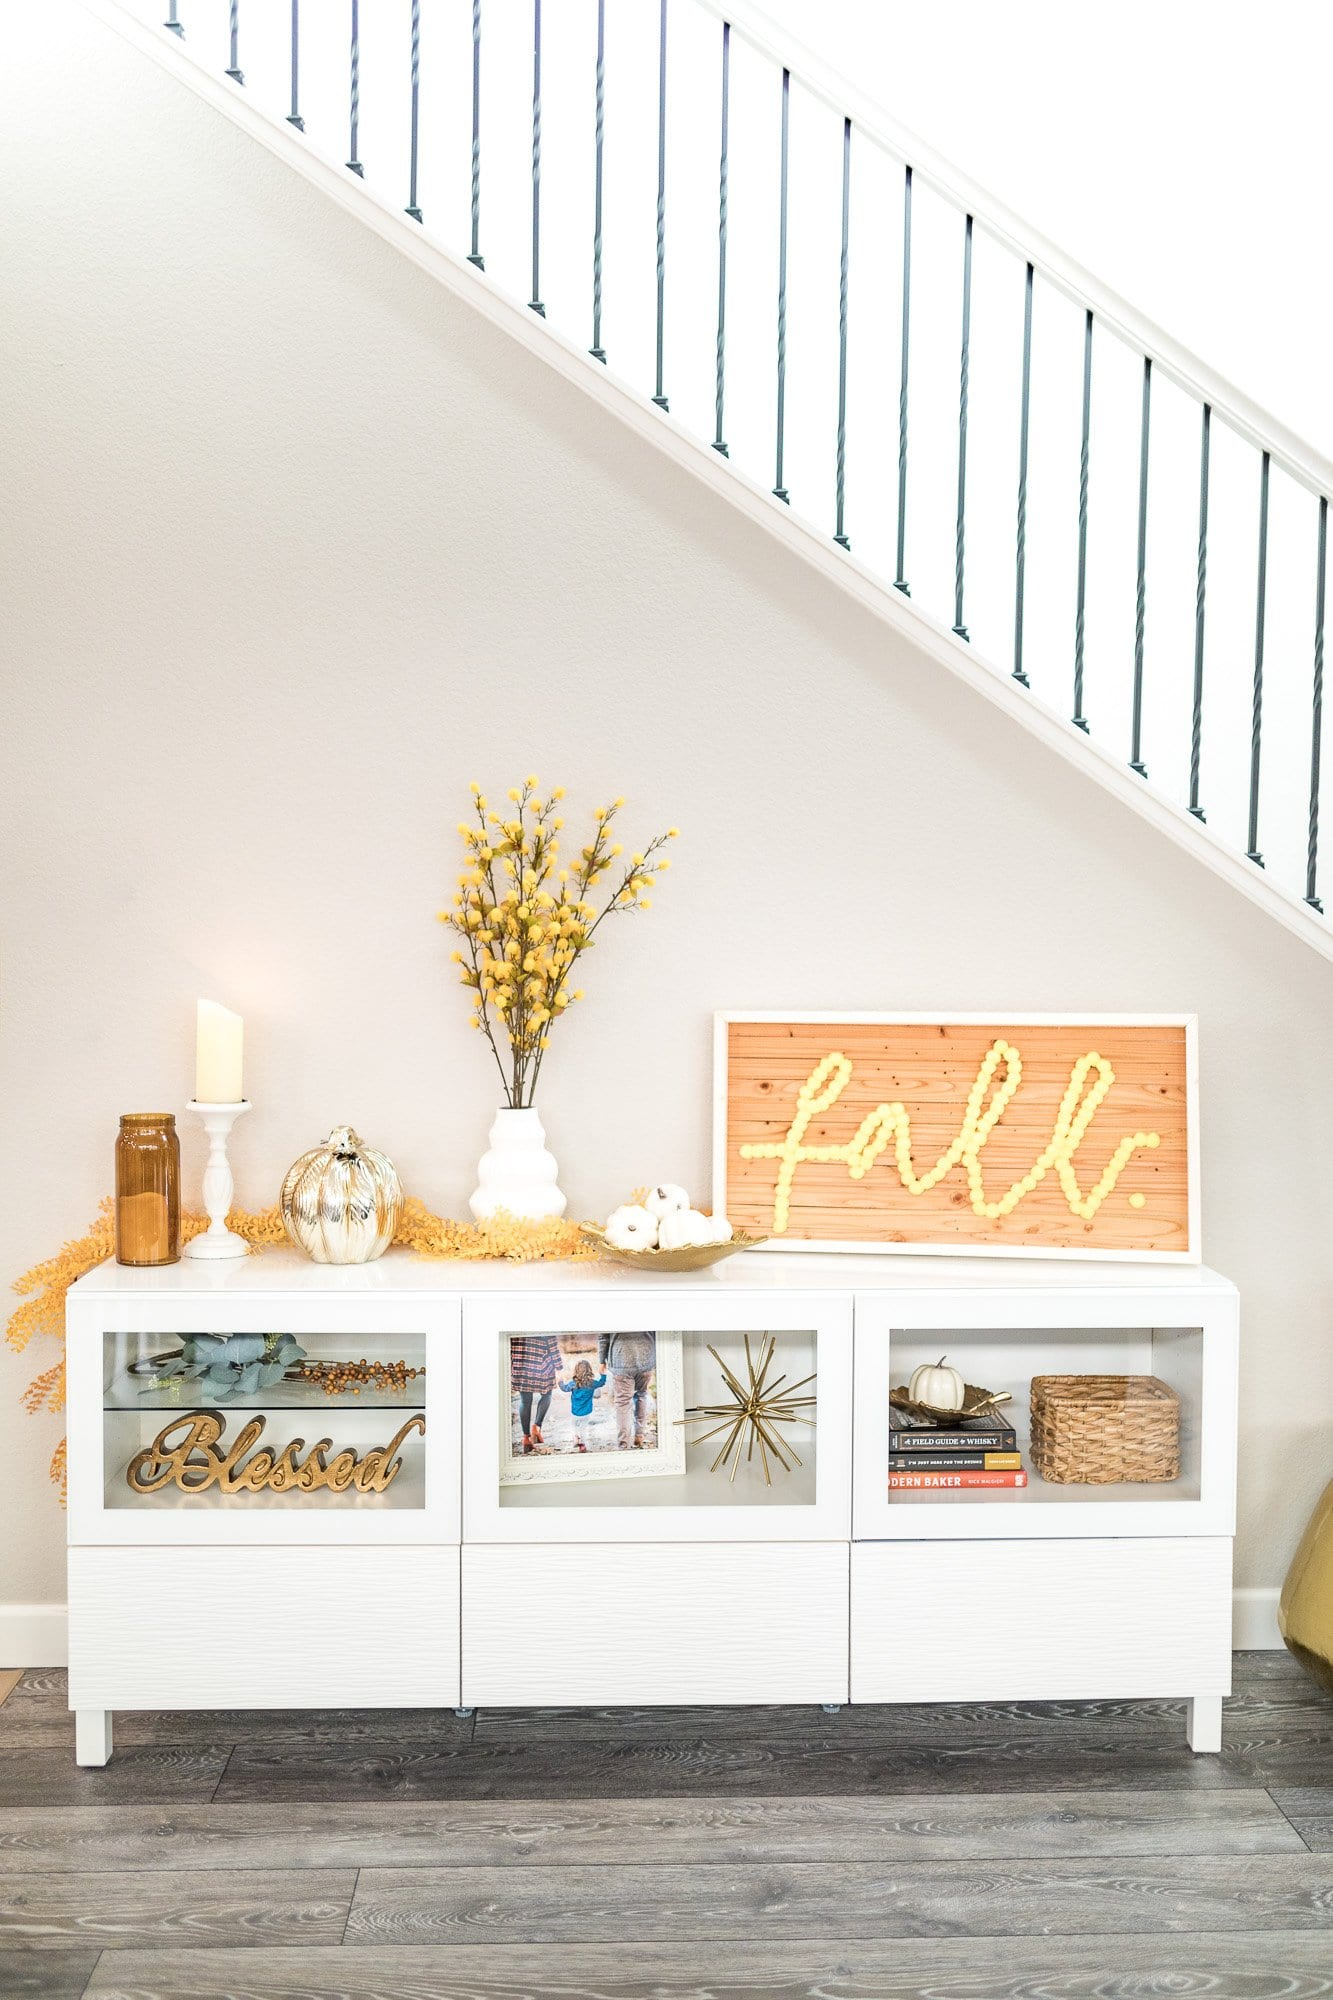 AMAZING FALL DECOR FOR THE LIVING ROOM! Simple & Elegant diy fall decor | fall decor ideas diy | pumpkin decorating ideas | Never Skip Brunch by Cara Newhart | #pumpkins #diy #fall #neverskipbrunch